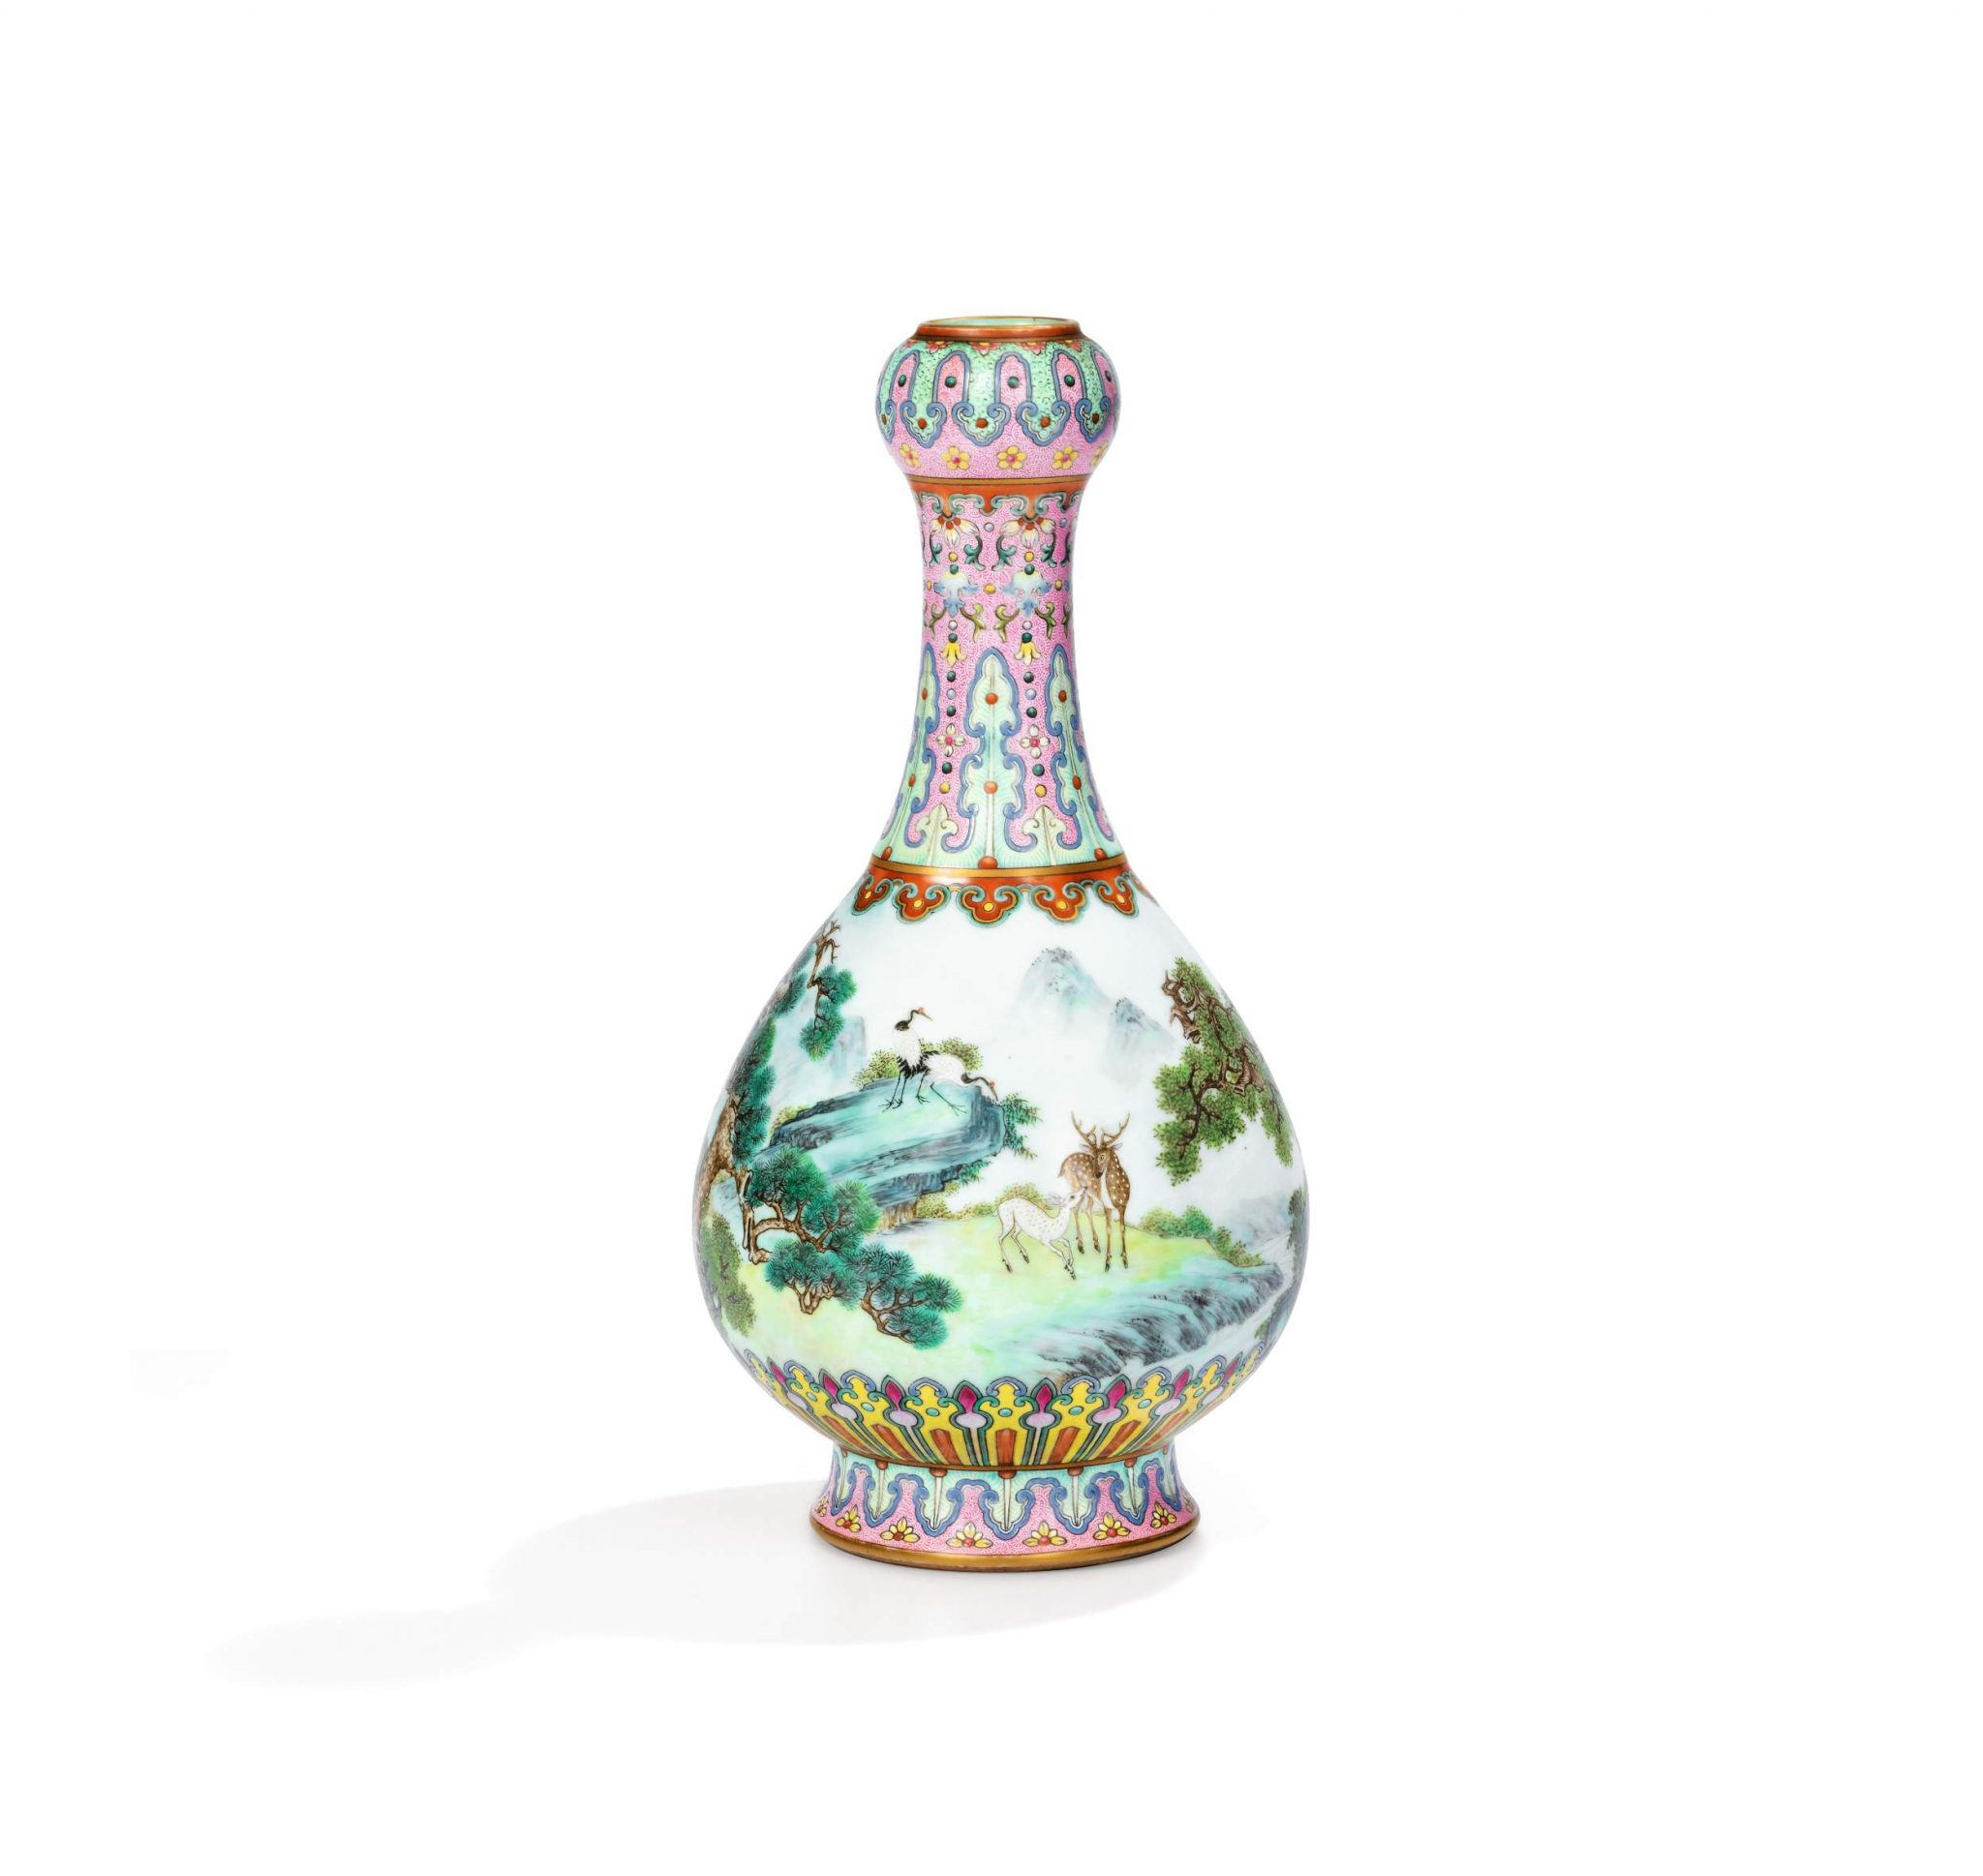 A unique Imperial 18th century 'Yangcai' Famille-Rose porcelain vase, bearing a mark from the reign of the Qianlong Emperor (r. 1736-1795). £430,000 – 610,000 (€500,000 – 700,000 / US$ 600,000 – 850,000 / HK$4.8-6.7 million).